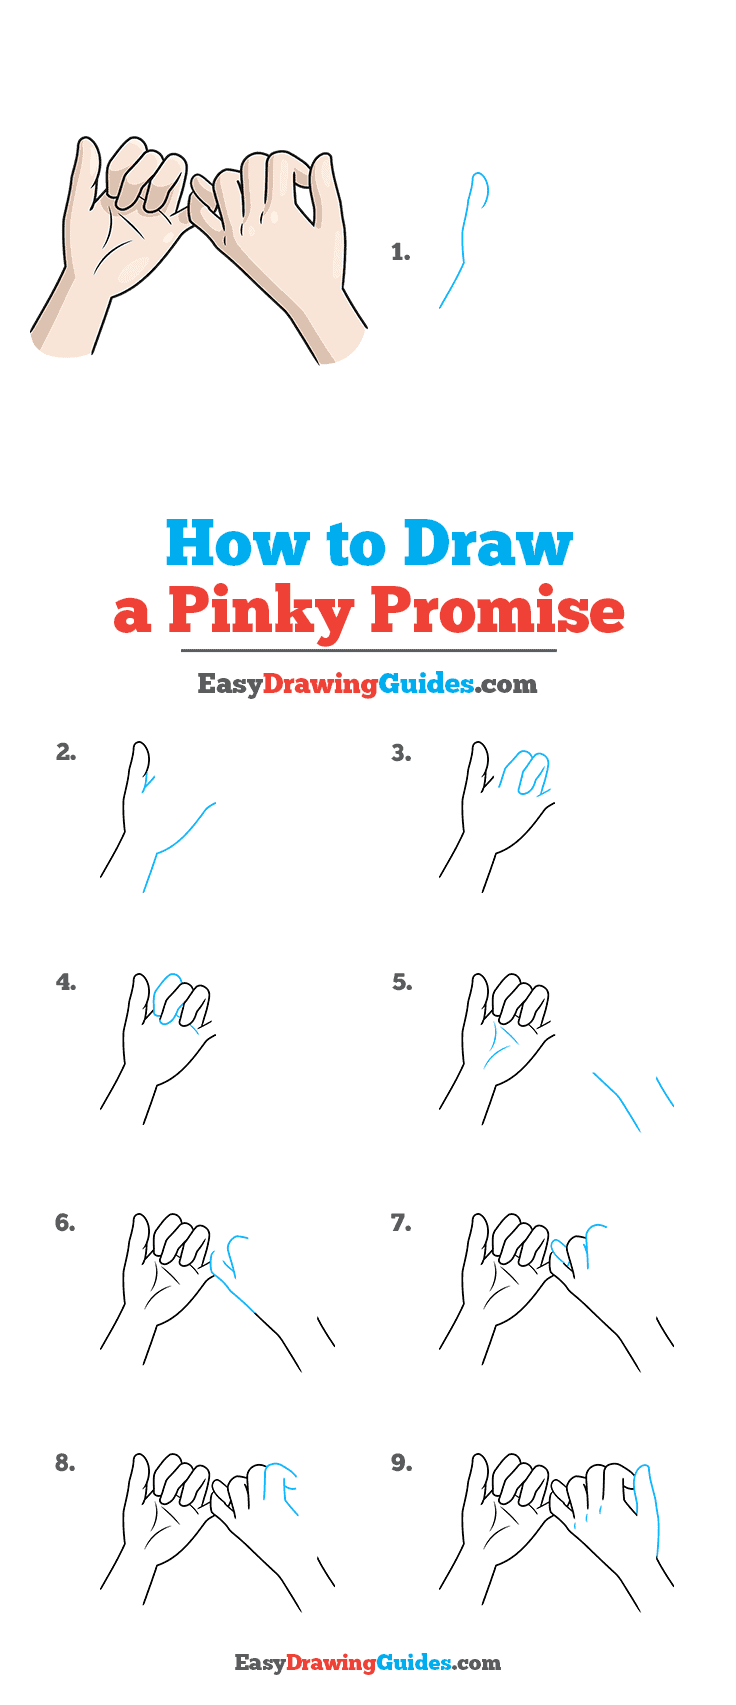 How to Draw a Pinky Promise Step by Step Tutorial Image